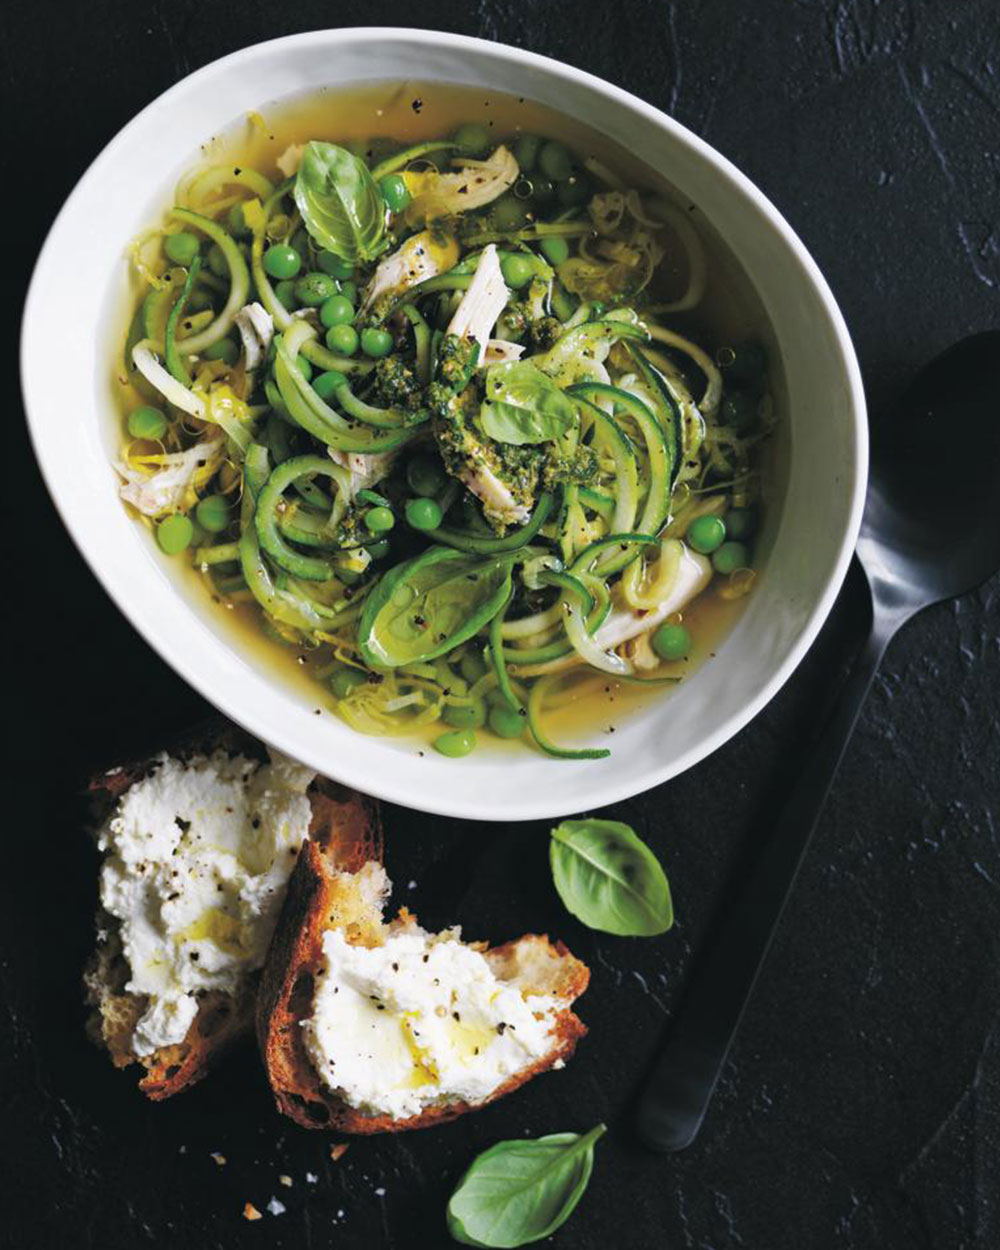 Chicken and zucchini noodle soup